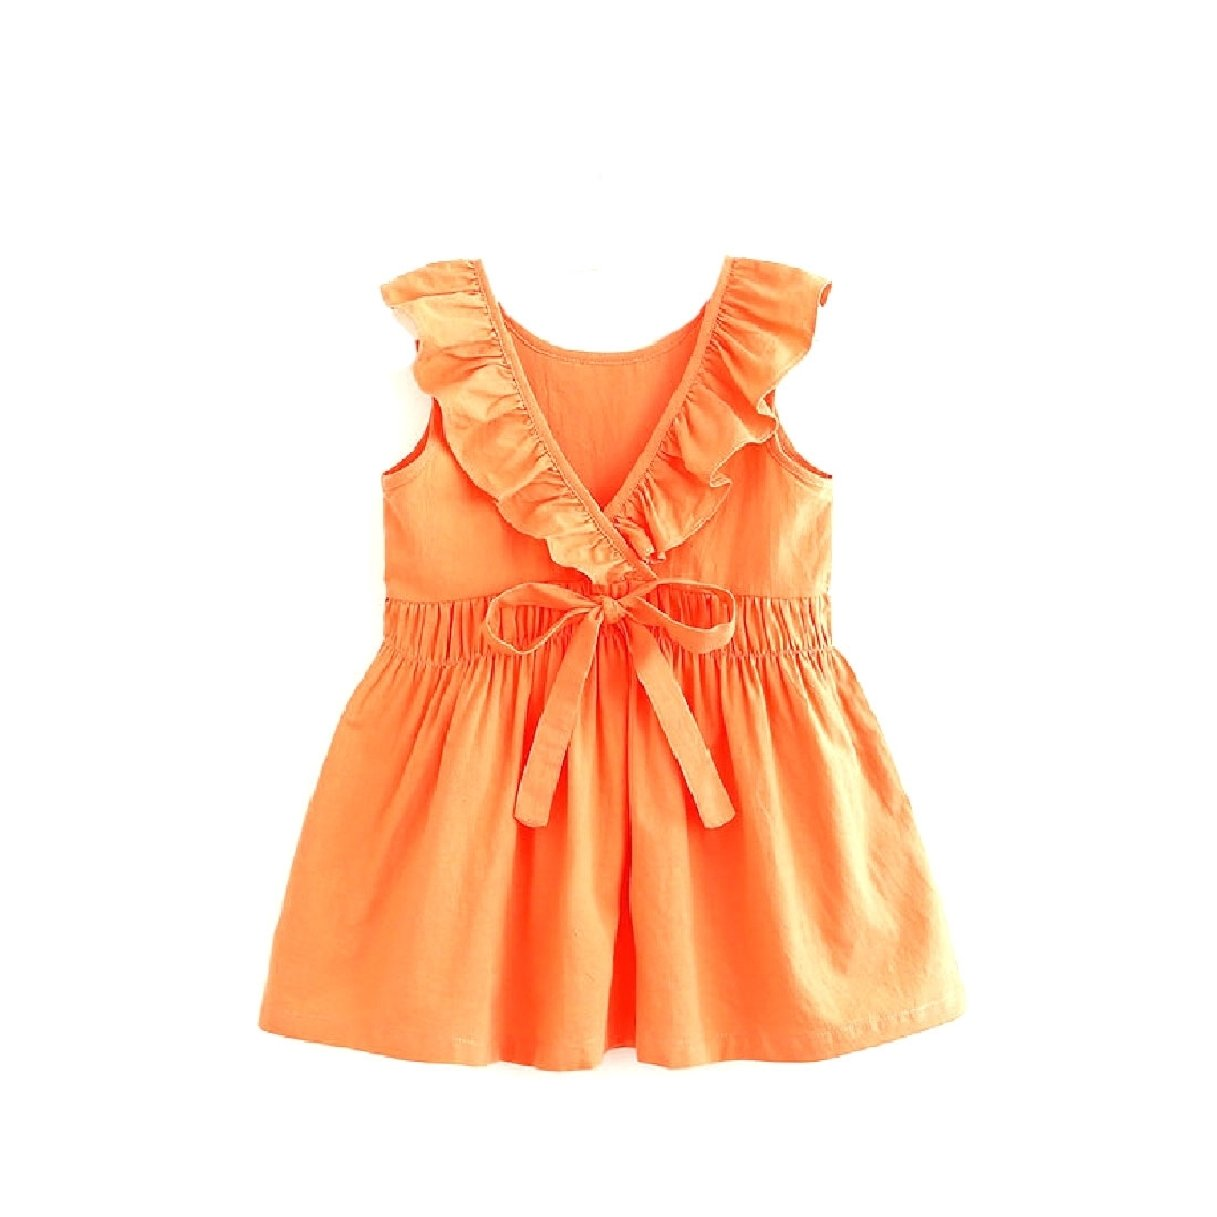 Zago Big Girls' Fine Cotton Tunic Ruffled with Bow Pure Color Dress Orange 80